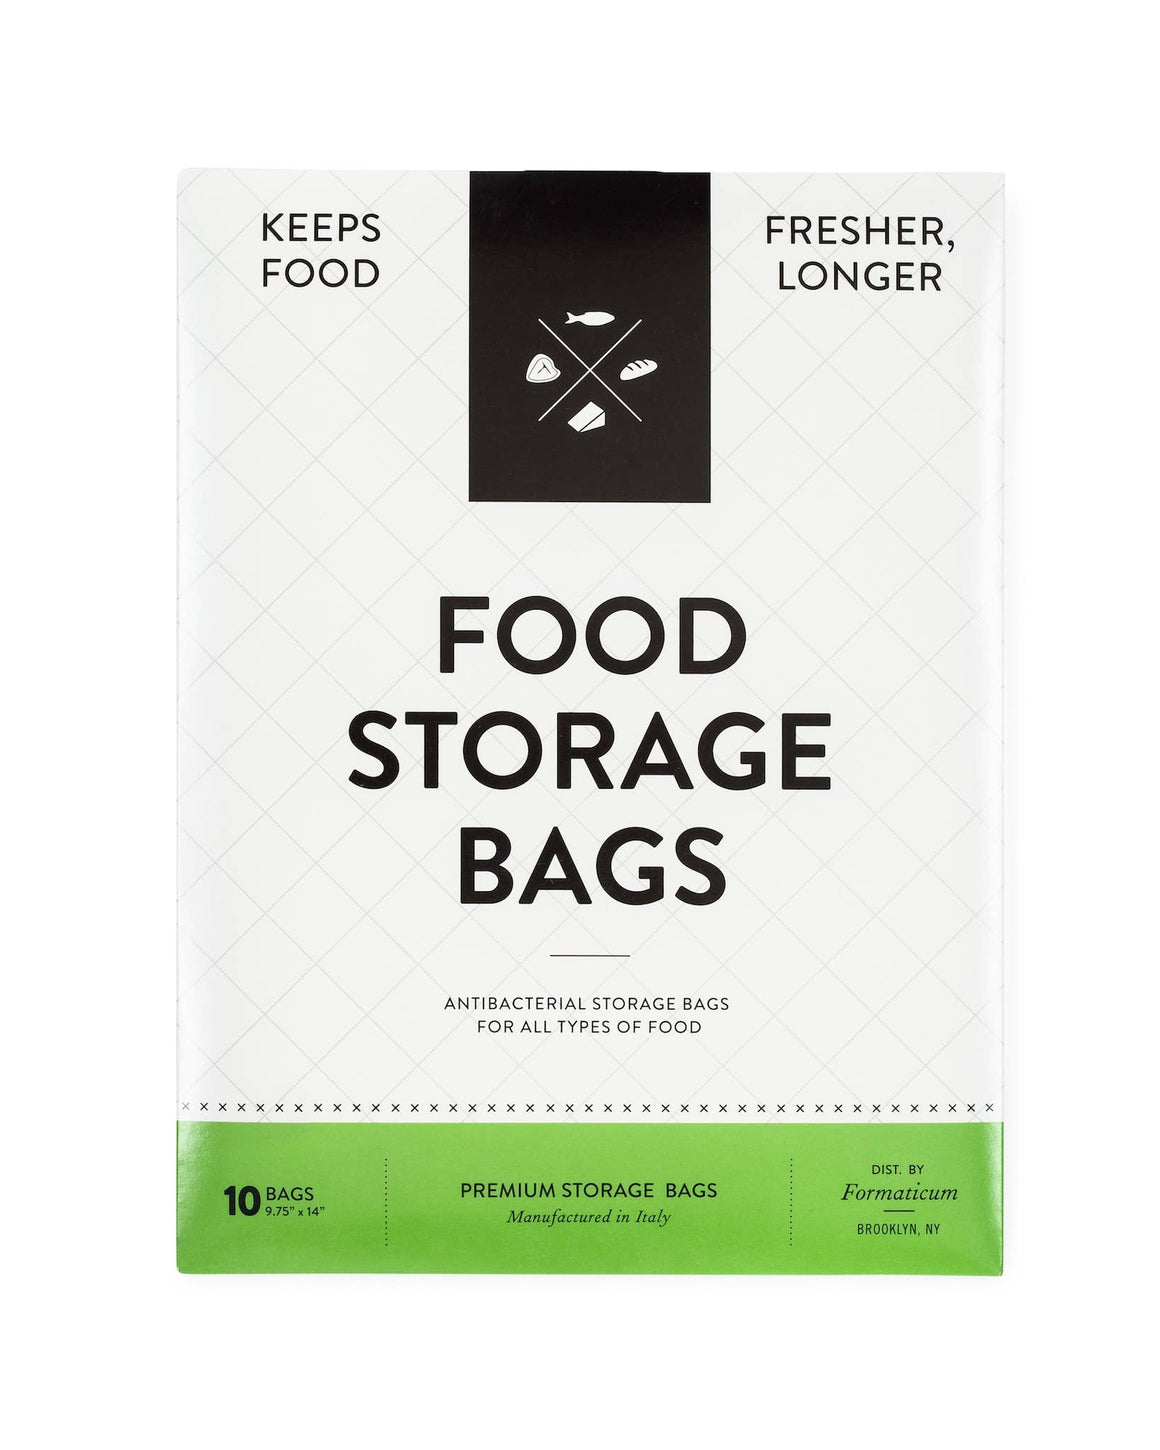 Formaticum - Food Storage Bags